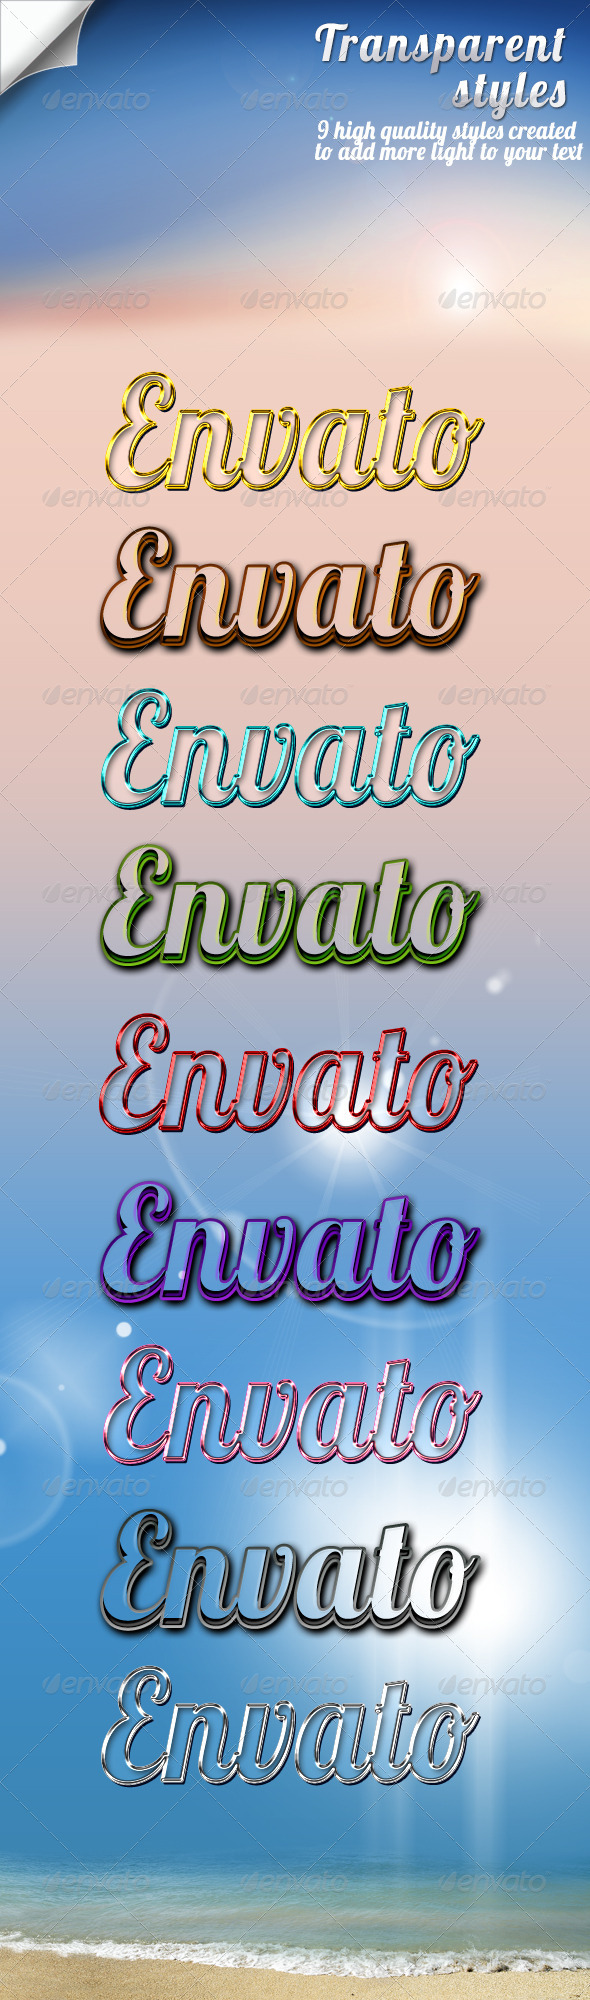 Transparent Styles - Text Effects Styles